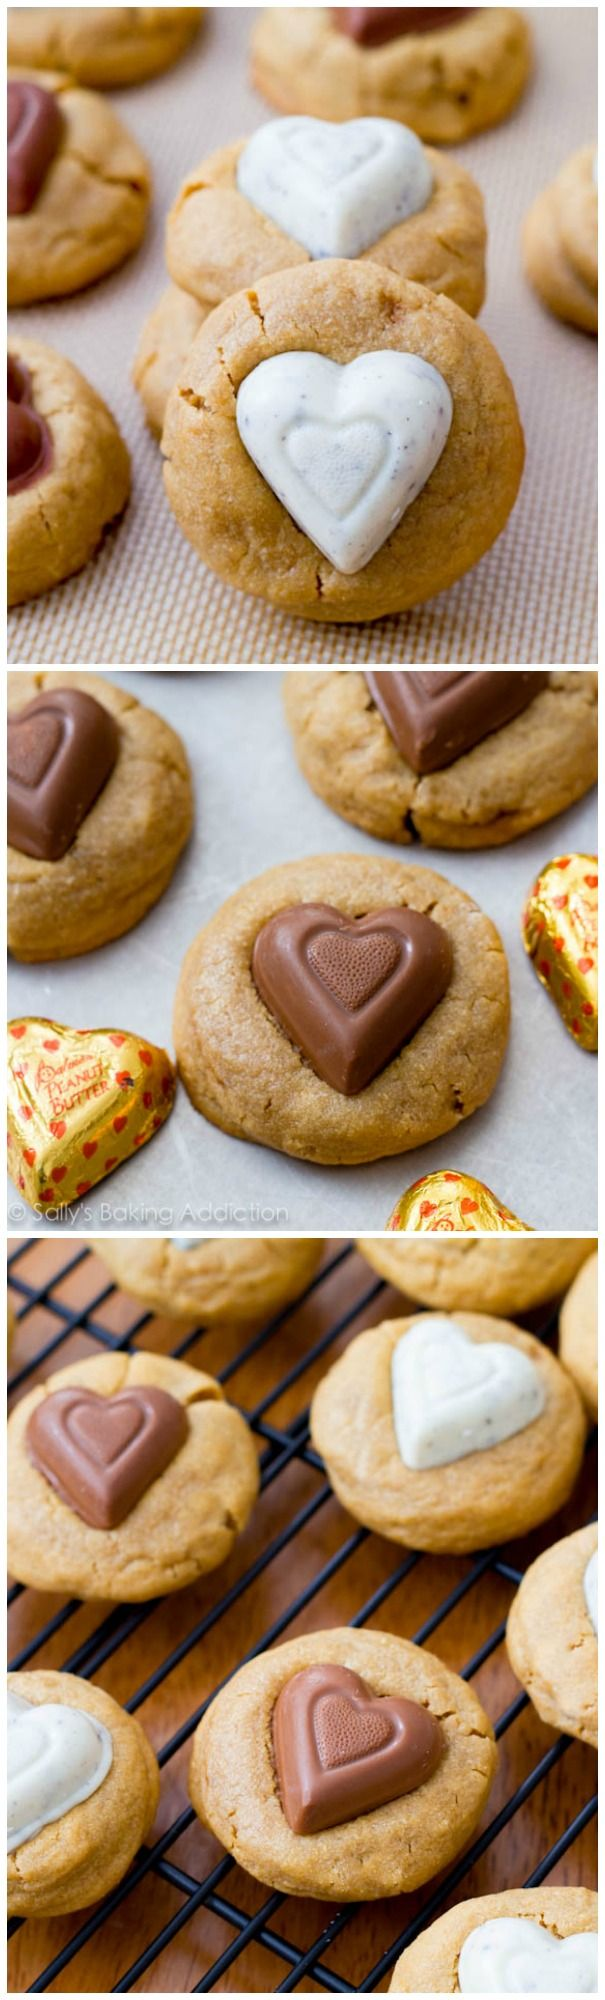 Soft-Baked Peanut Butter Sweetheart Cookies. These are the ultimate soft peanut butter cookie and are so easy to make! @Sally [Sally's Baking Addiction]